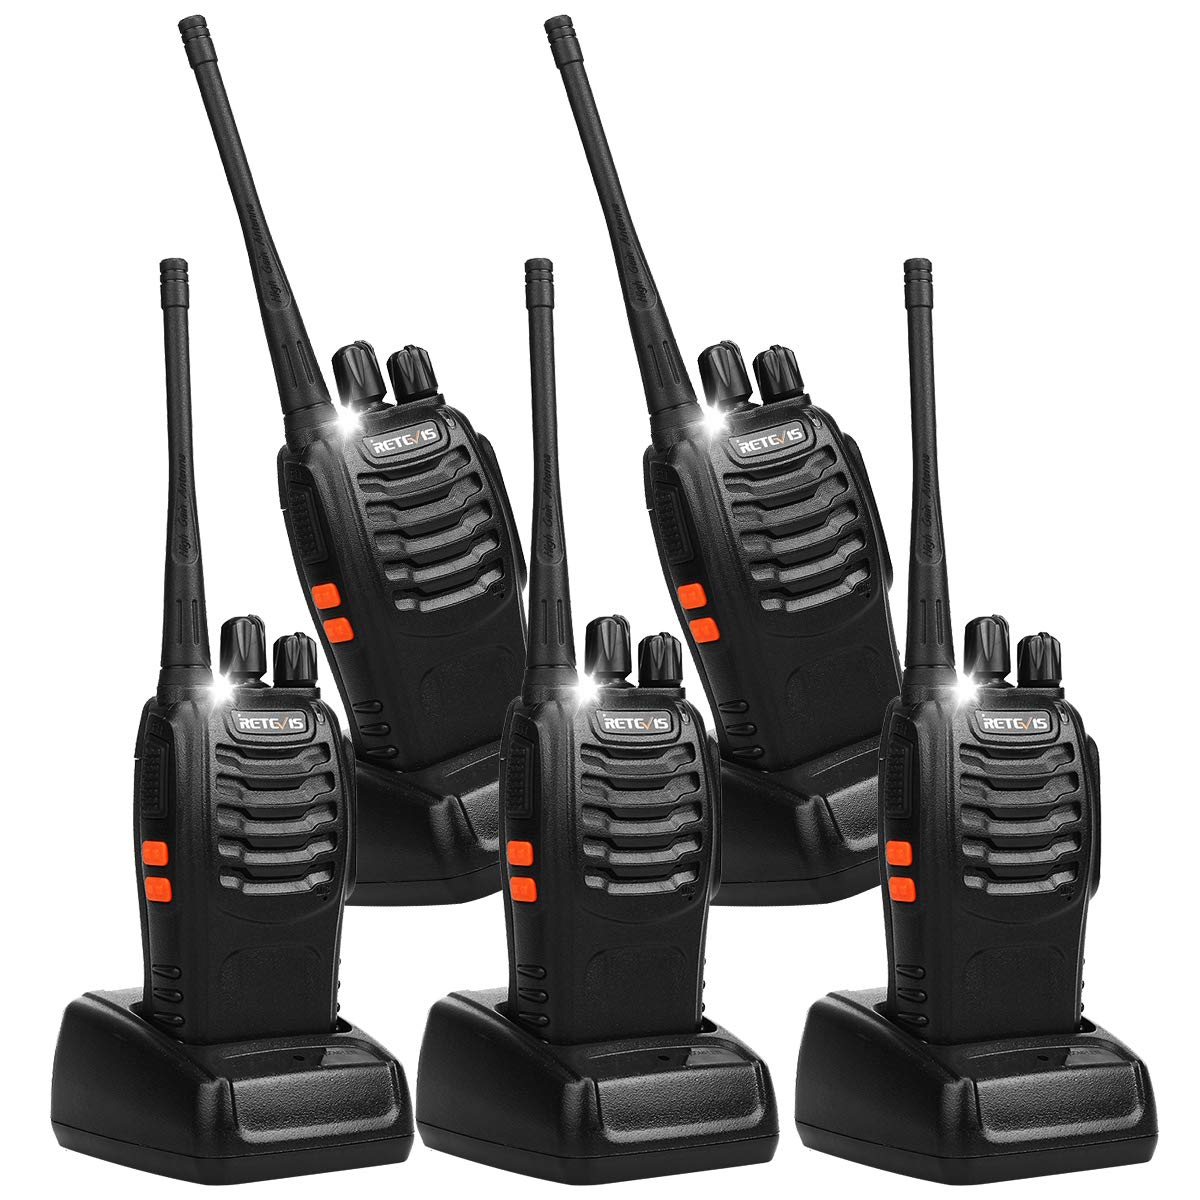 a00a5a0e5d6a83 Amazon.com  Retevis H-777 2 Way Radio Walkie Talkies UHF 16CH CTCSS DCS  Flashlight Walkie Talkies (5 Pack)  Cell Phones   Accessories